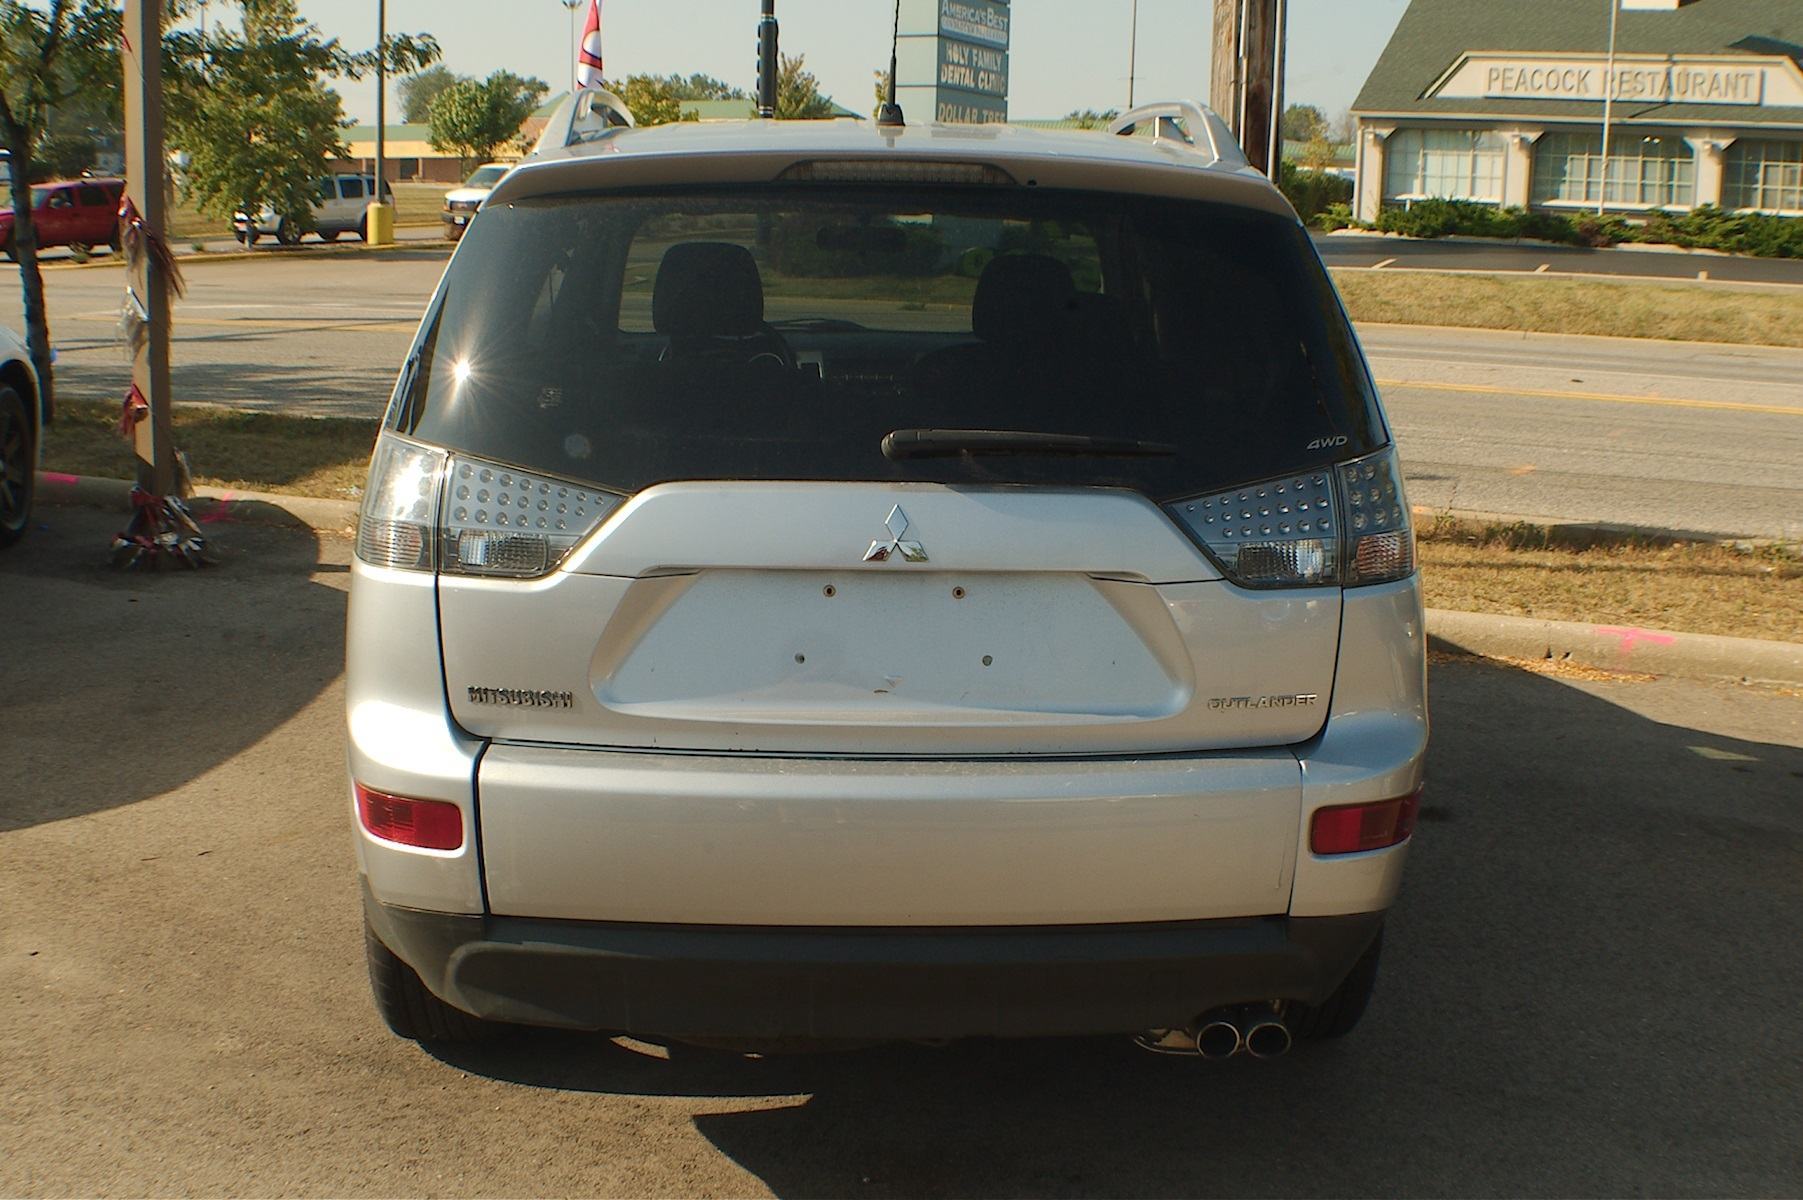 2007 Mitsubishi Outlander Silver SUV Wagon 4x4 Sale Buffalo Grove Deerfield Fox Lake Antioch